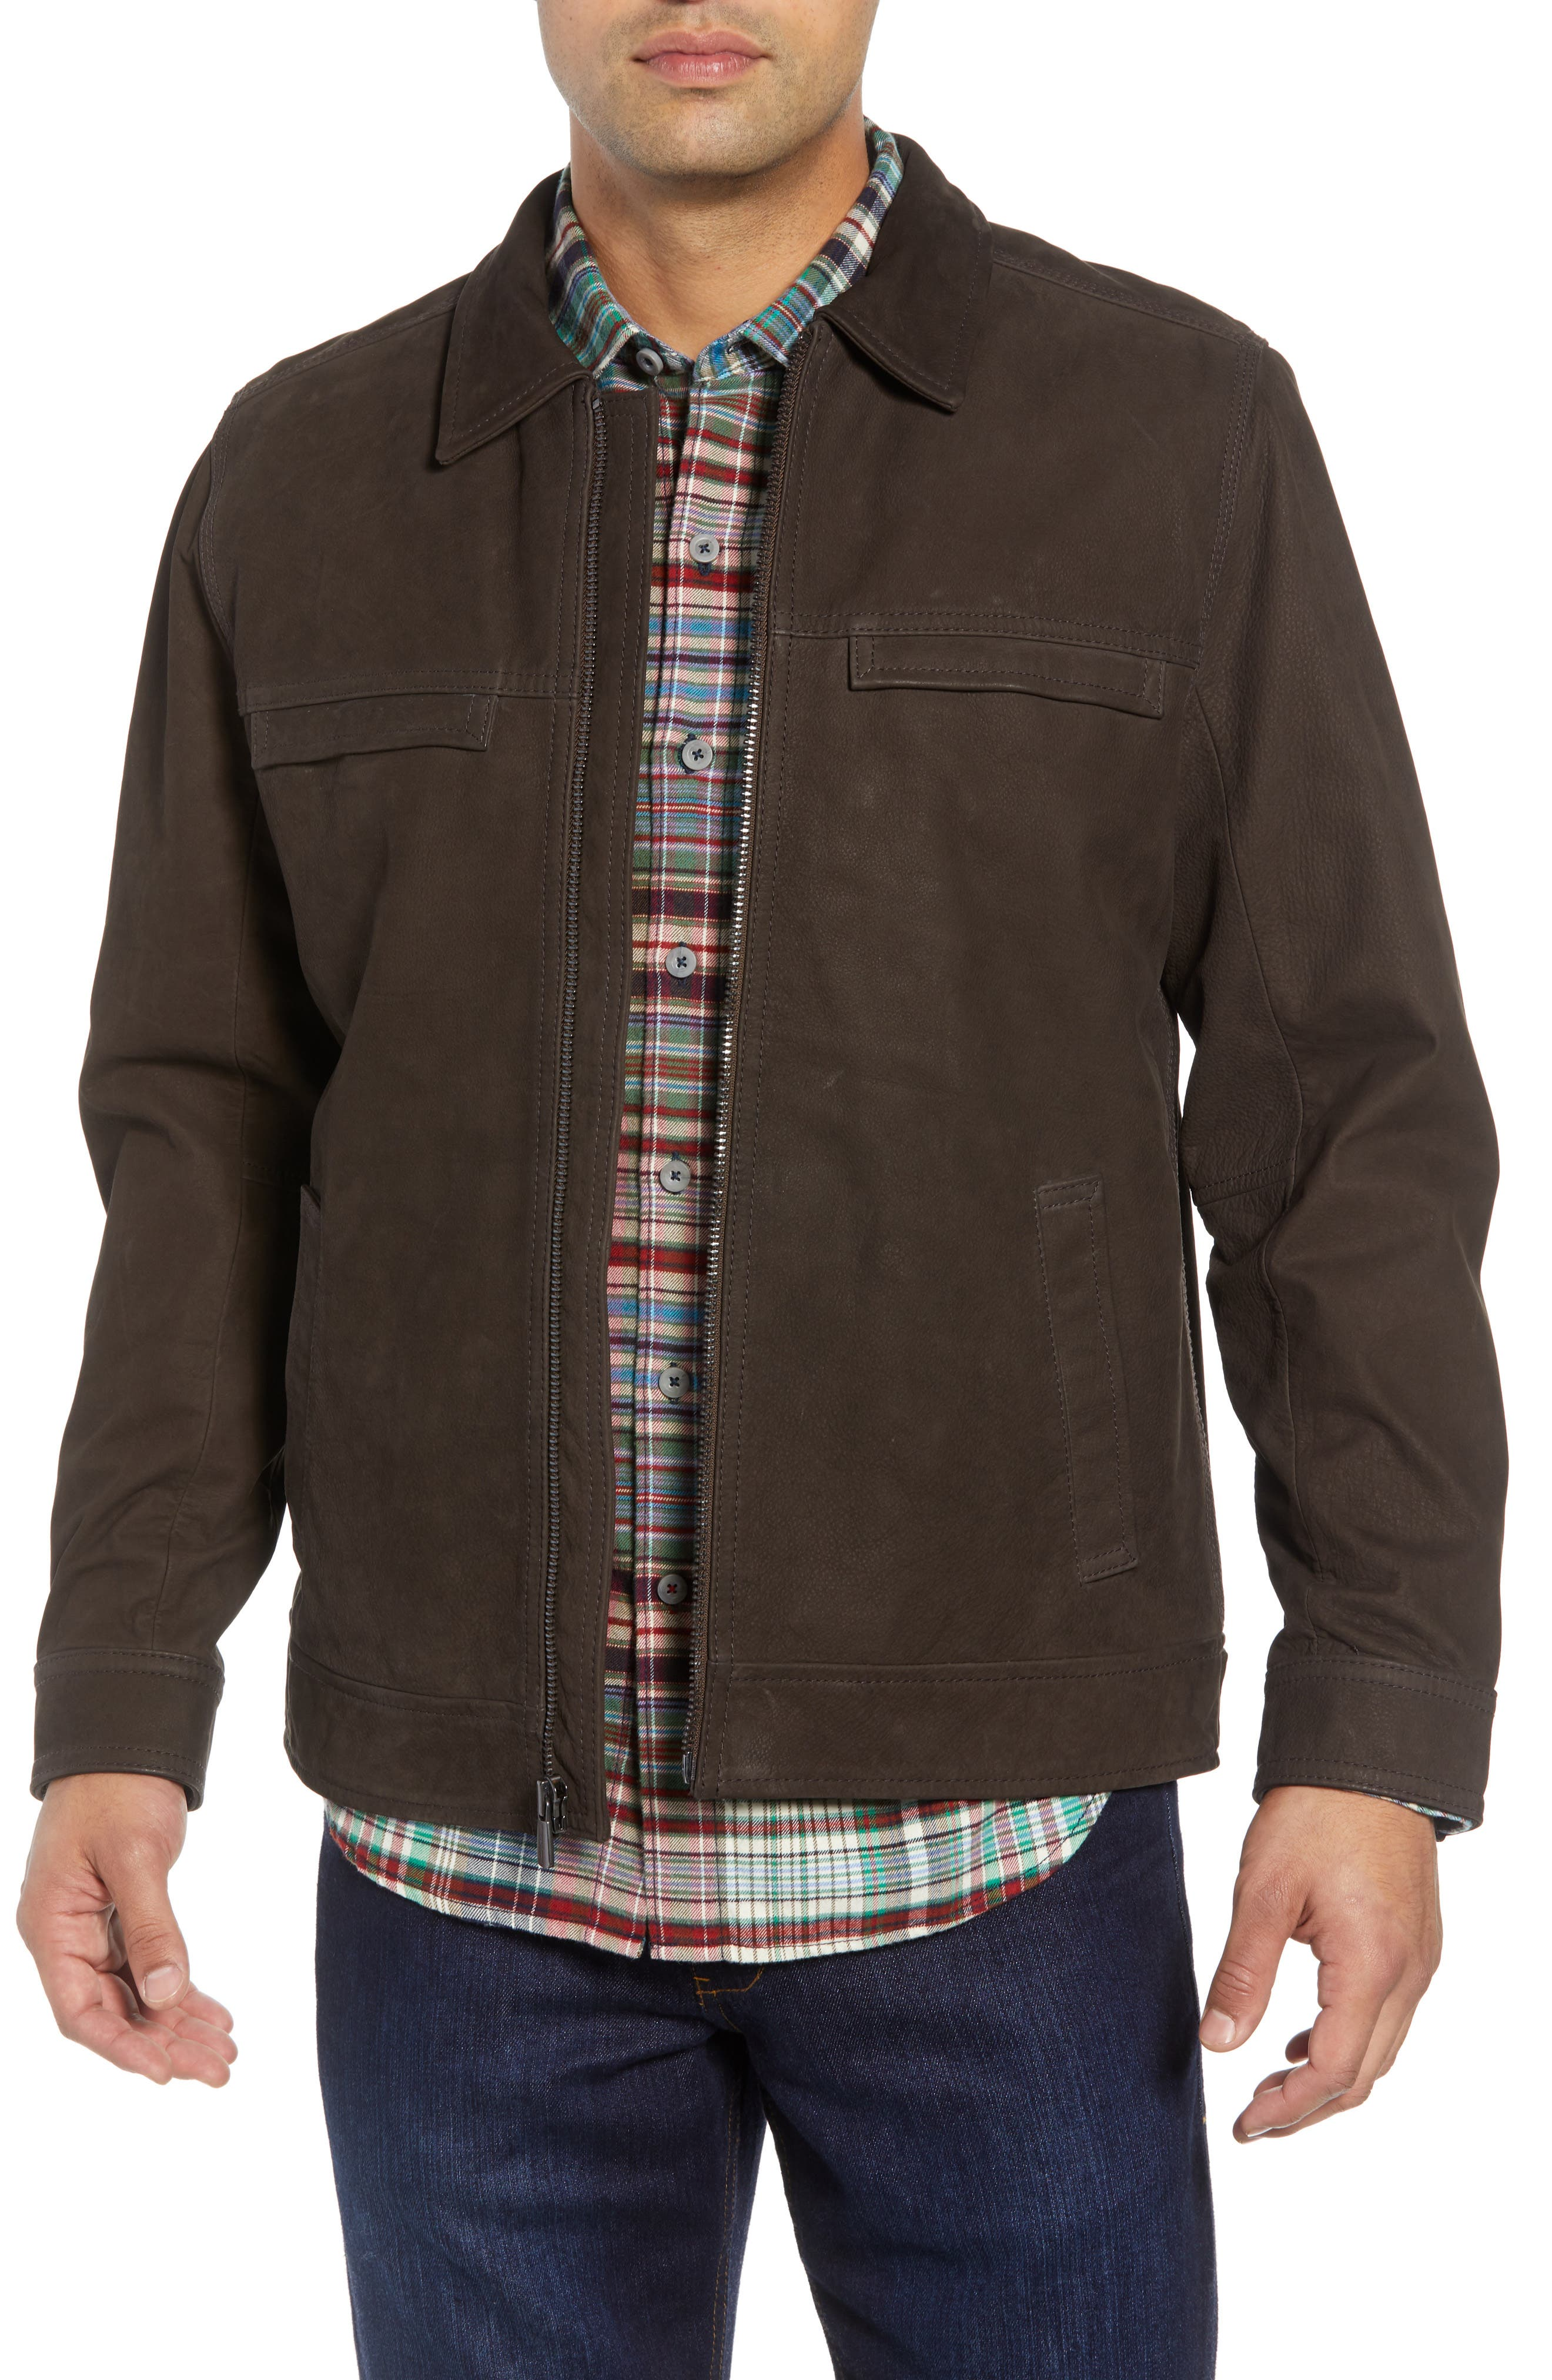 Elliott Bay Leather Jacket,                             Main thumbnail 1, color,                             COFFEE